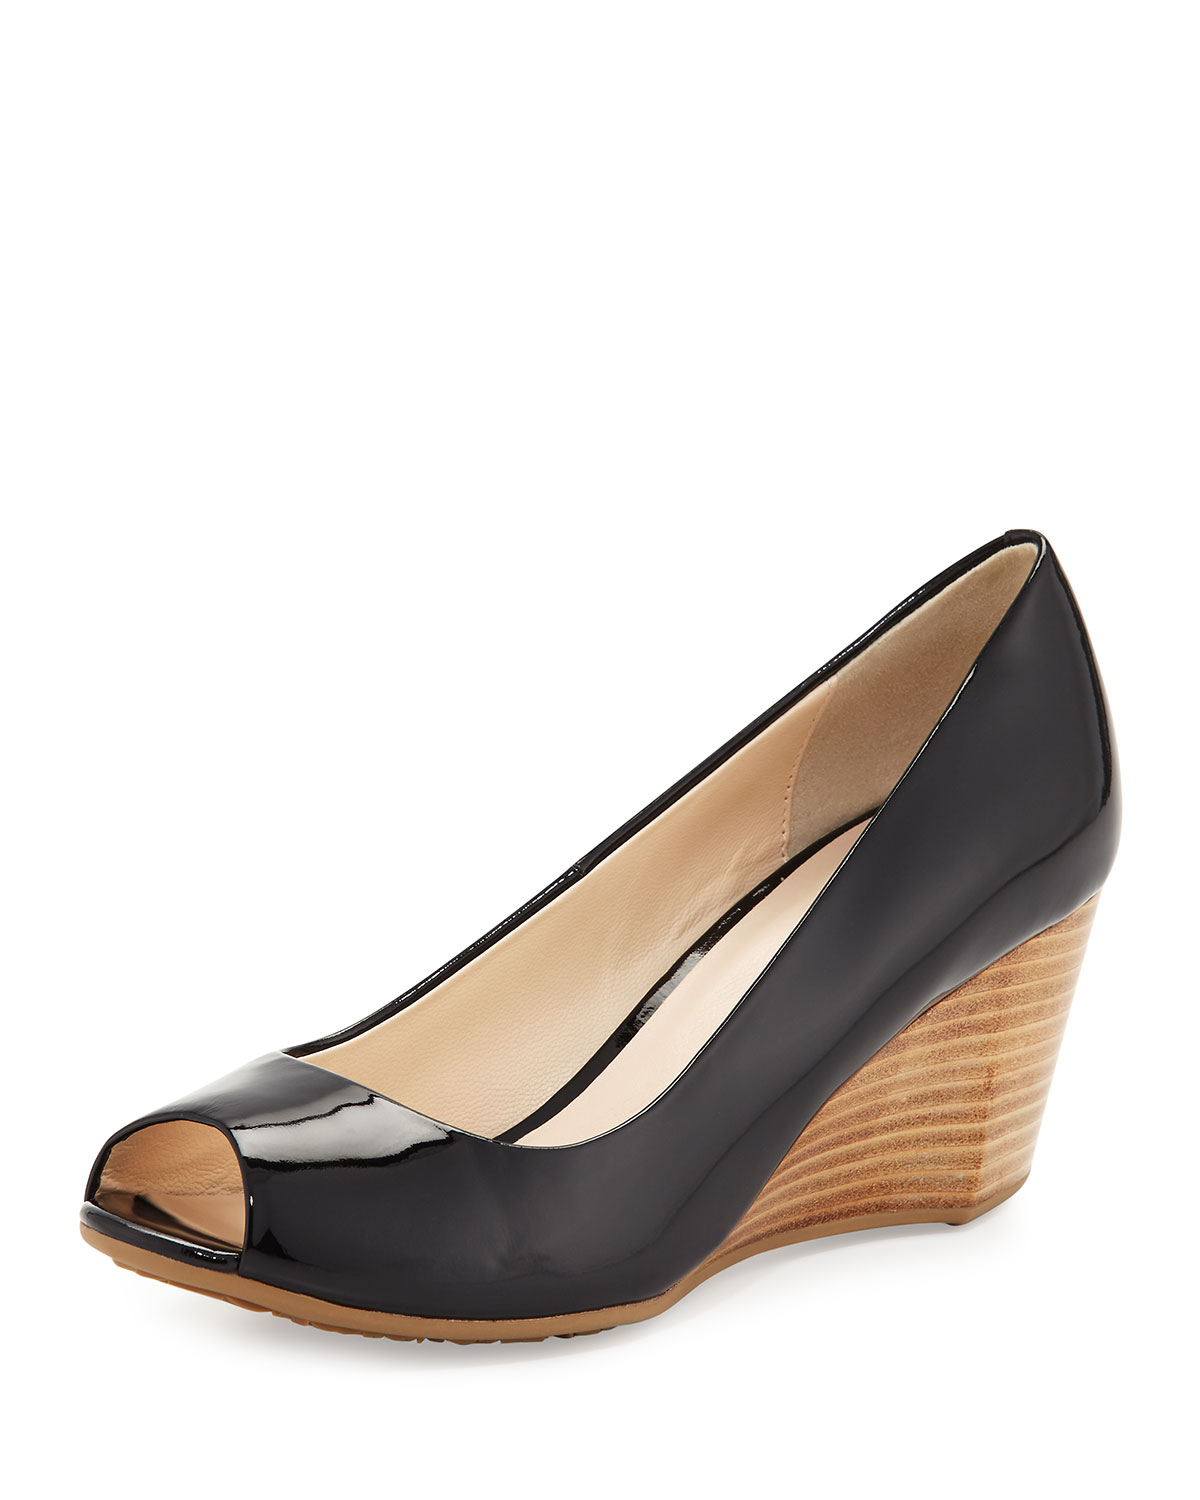 e91924a640 Cole Haan Sadie Grand Patent Leather Wedge Pump, Black | Neiman Marcus